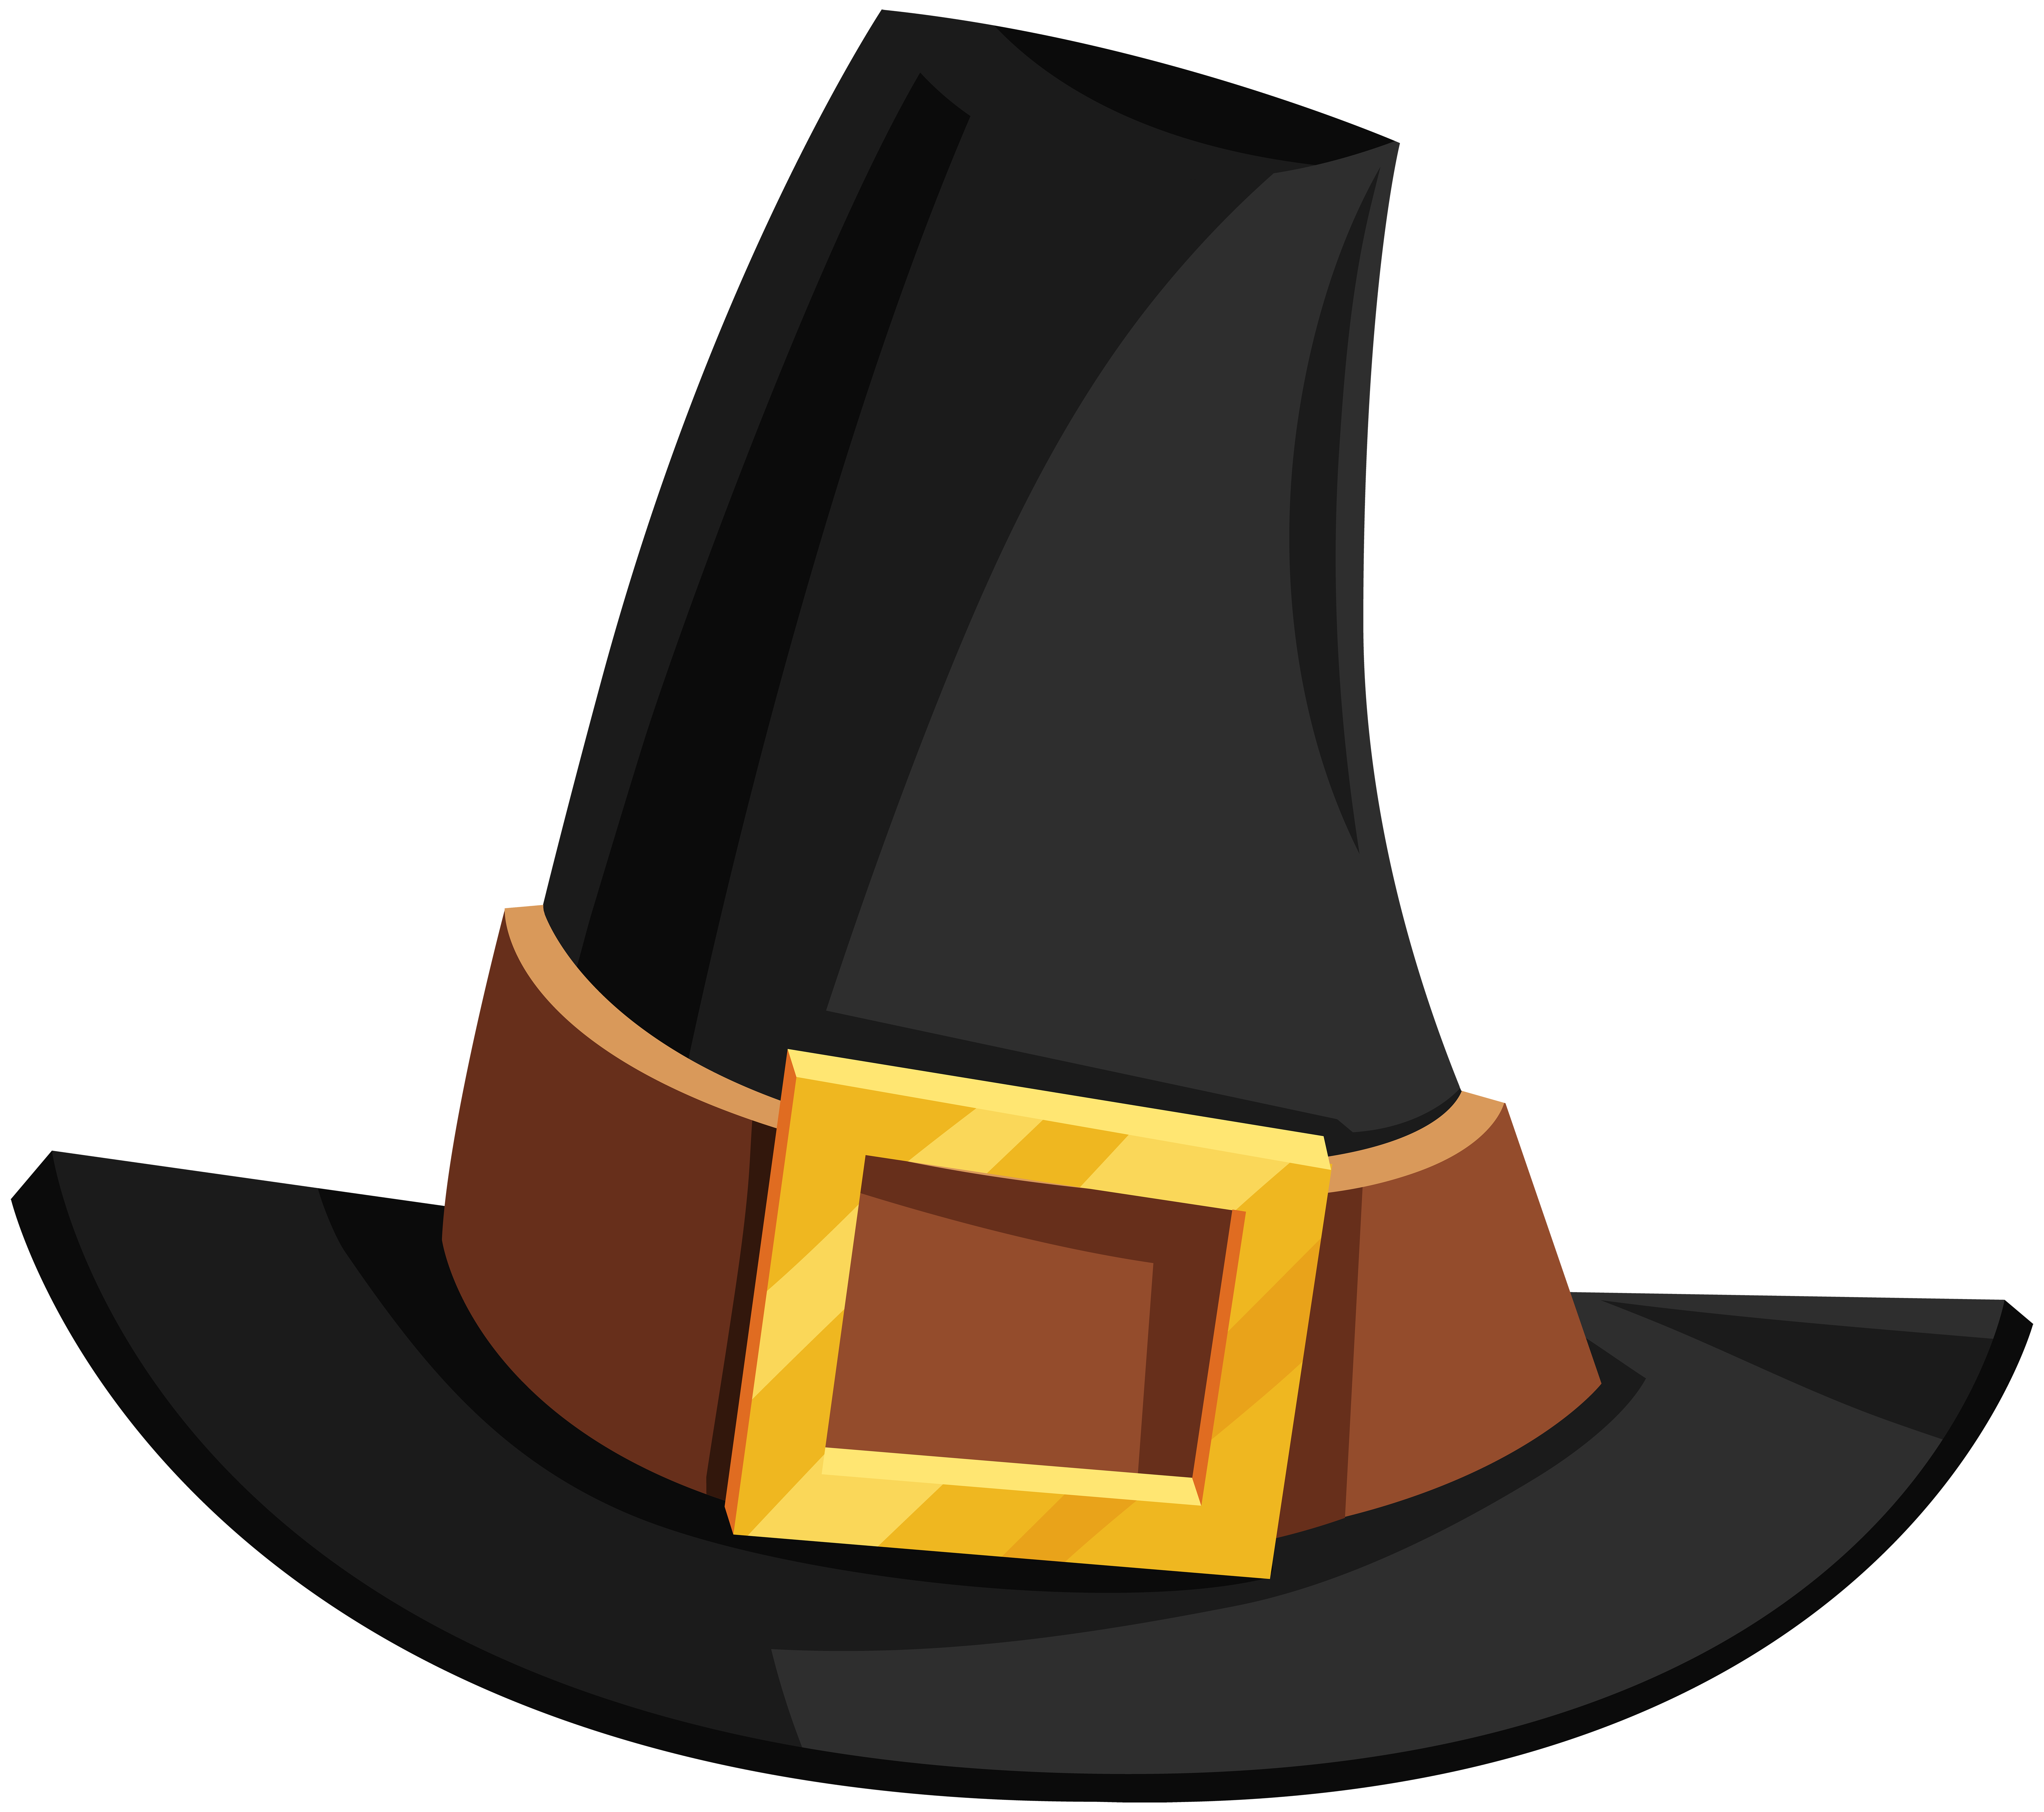 Pilgrims hat clipart picture free stock Pilgrim Hat Transparent PNG Image | Gallery Yopriceville - High ... picture free stock